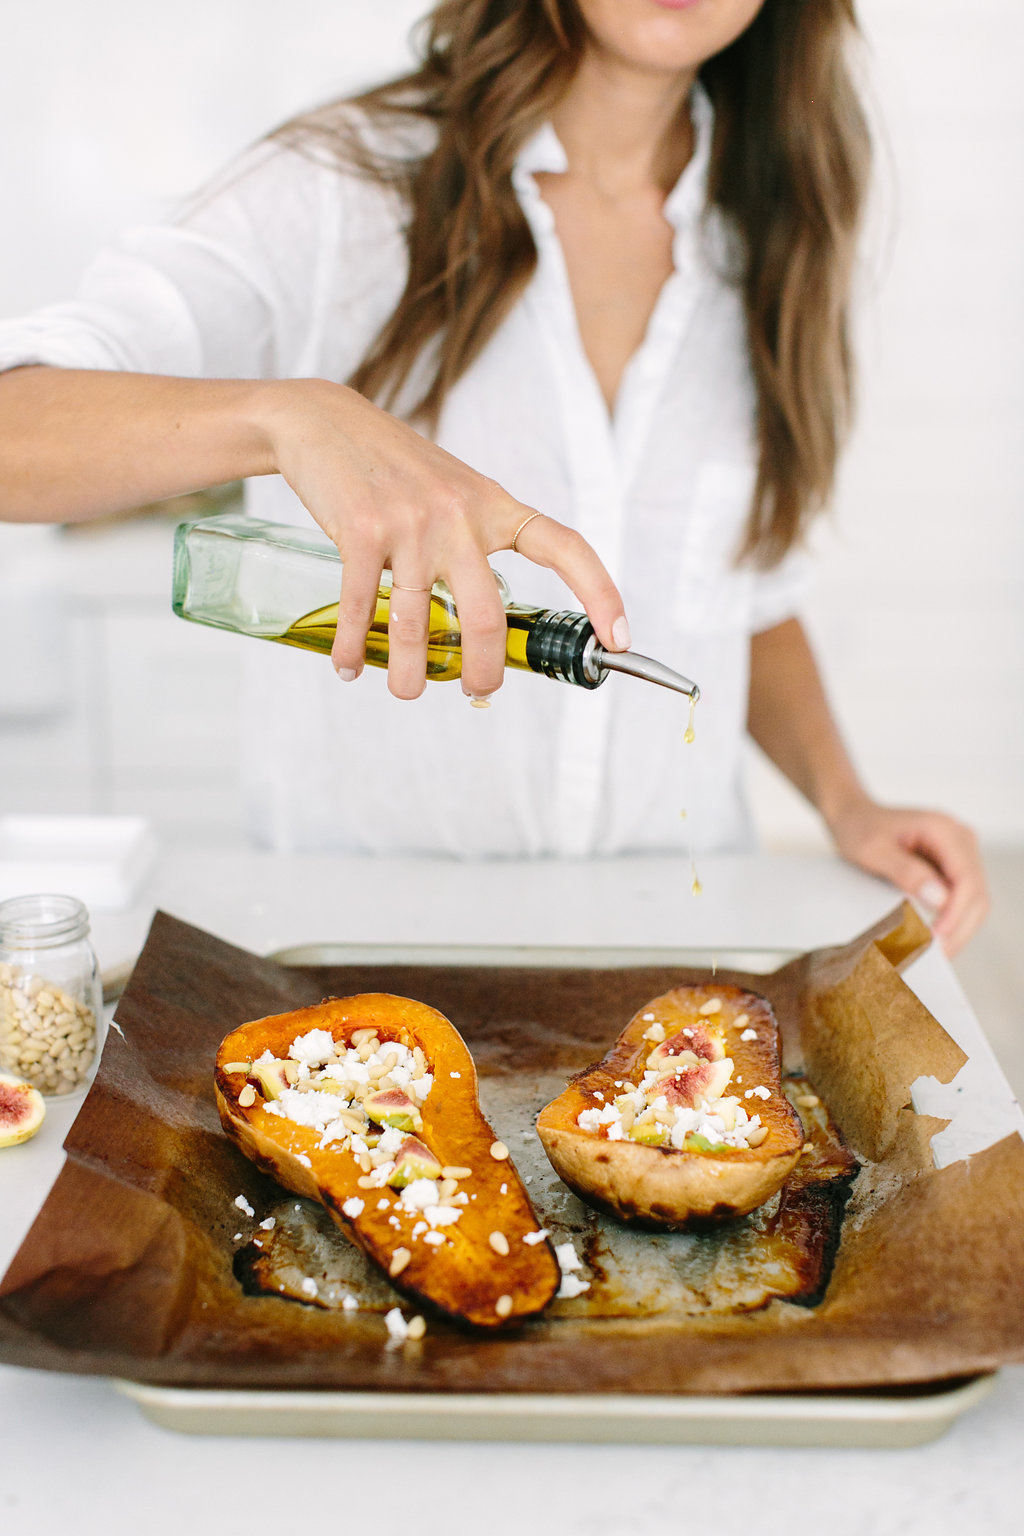 Roasted & Stuffed Butternut Squash filled with Pesto, Figs, & Goat Cheese